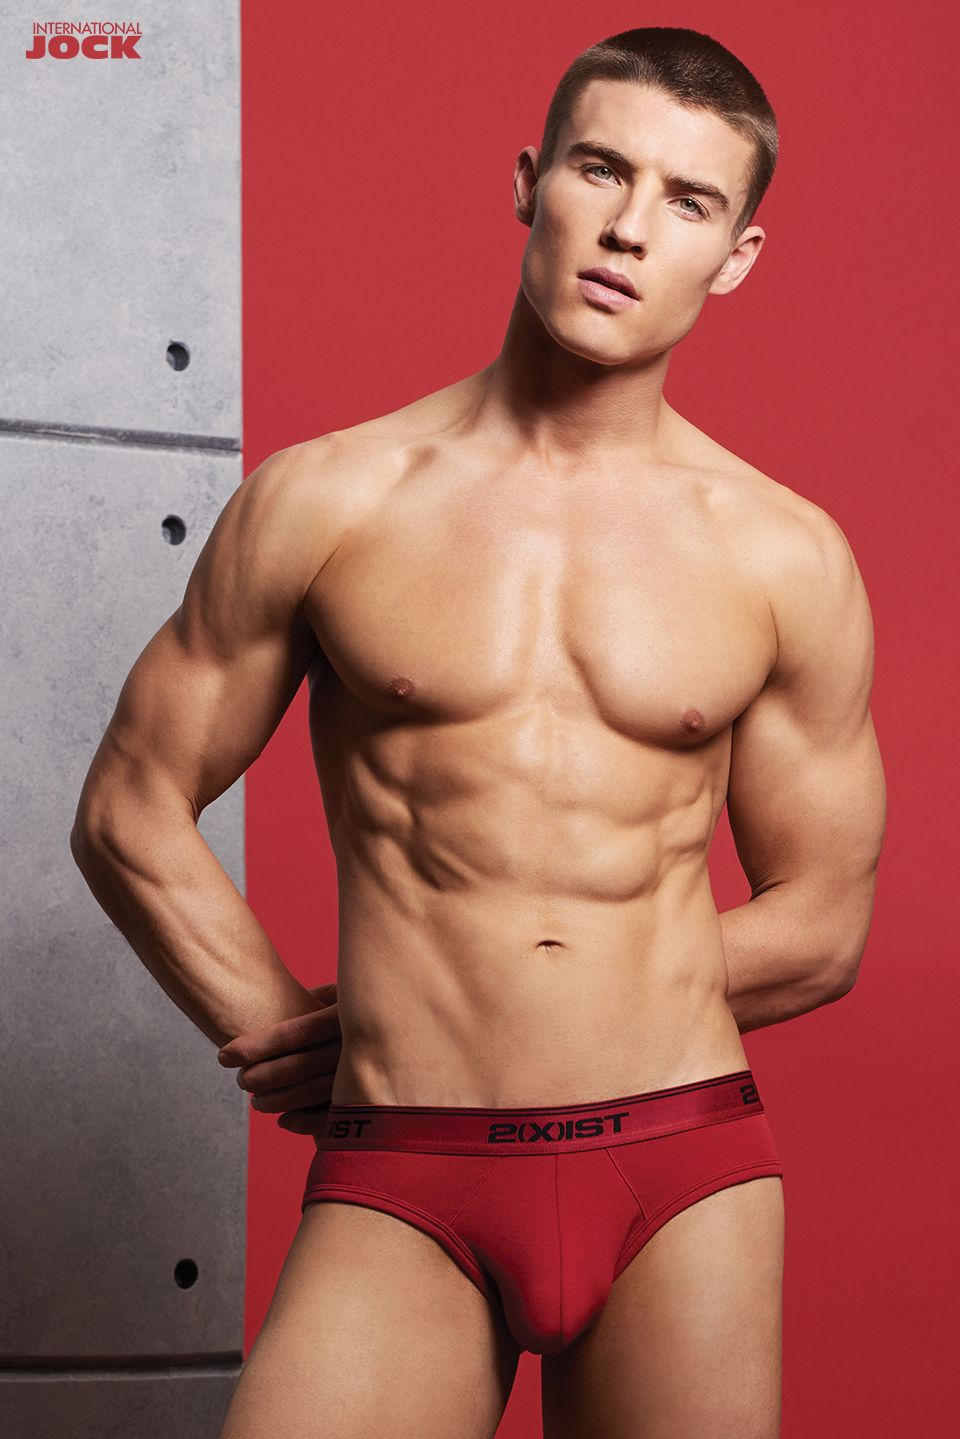 21c607e2a8 #2xist #underwear #male #model #mens #fashion #red #hot #summer #guys #sexy  #bulge